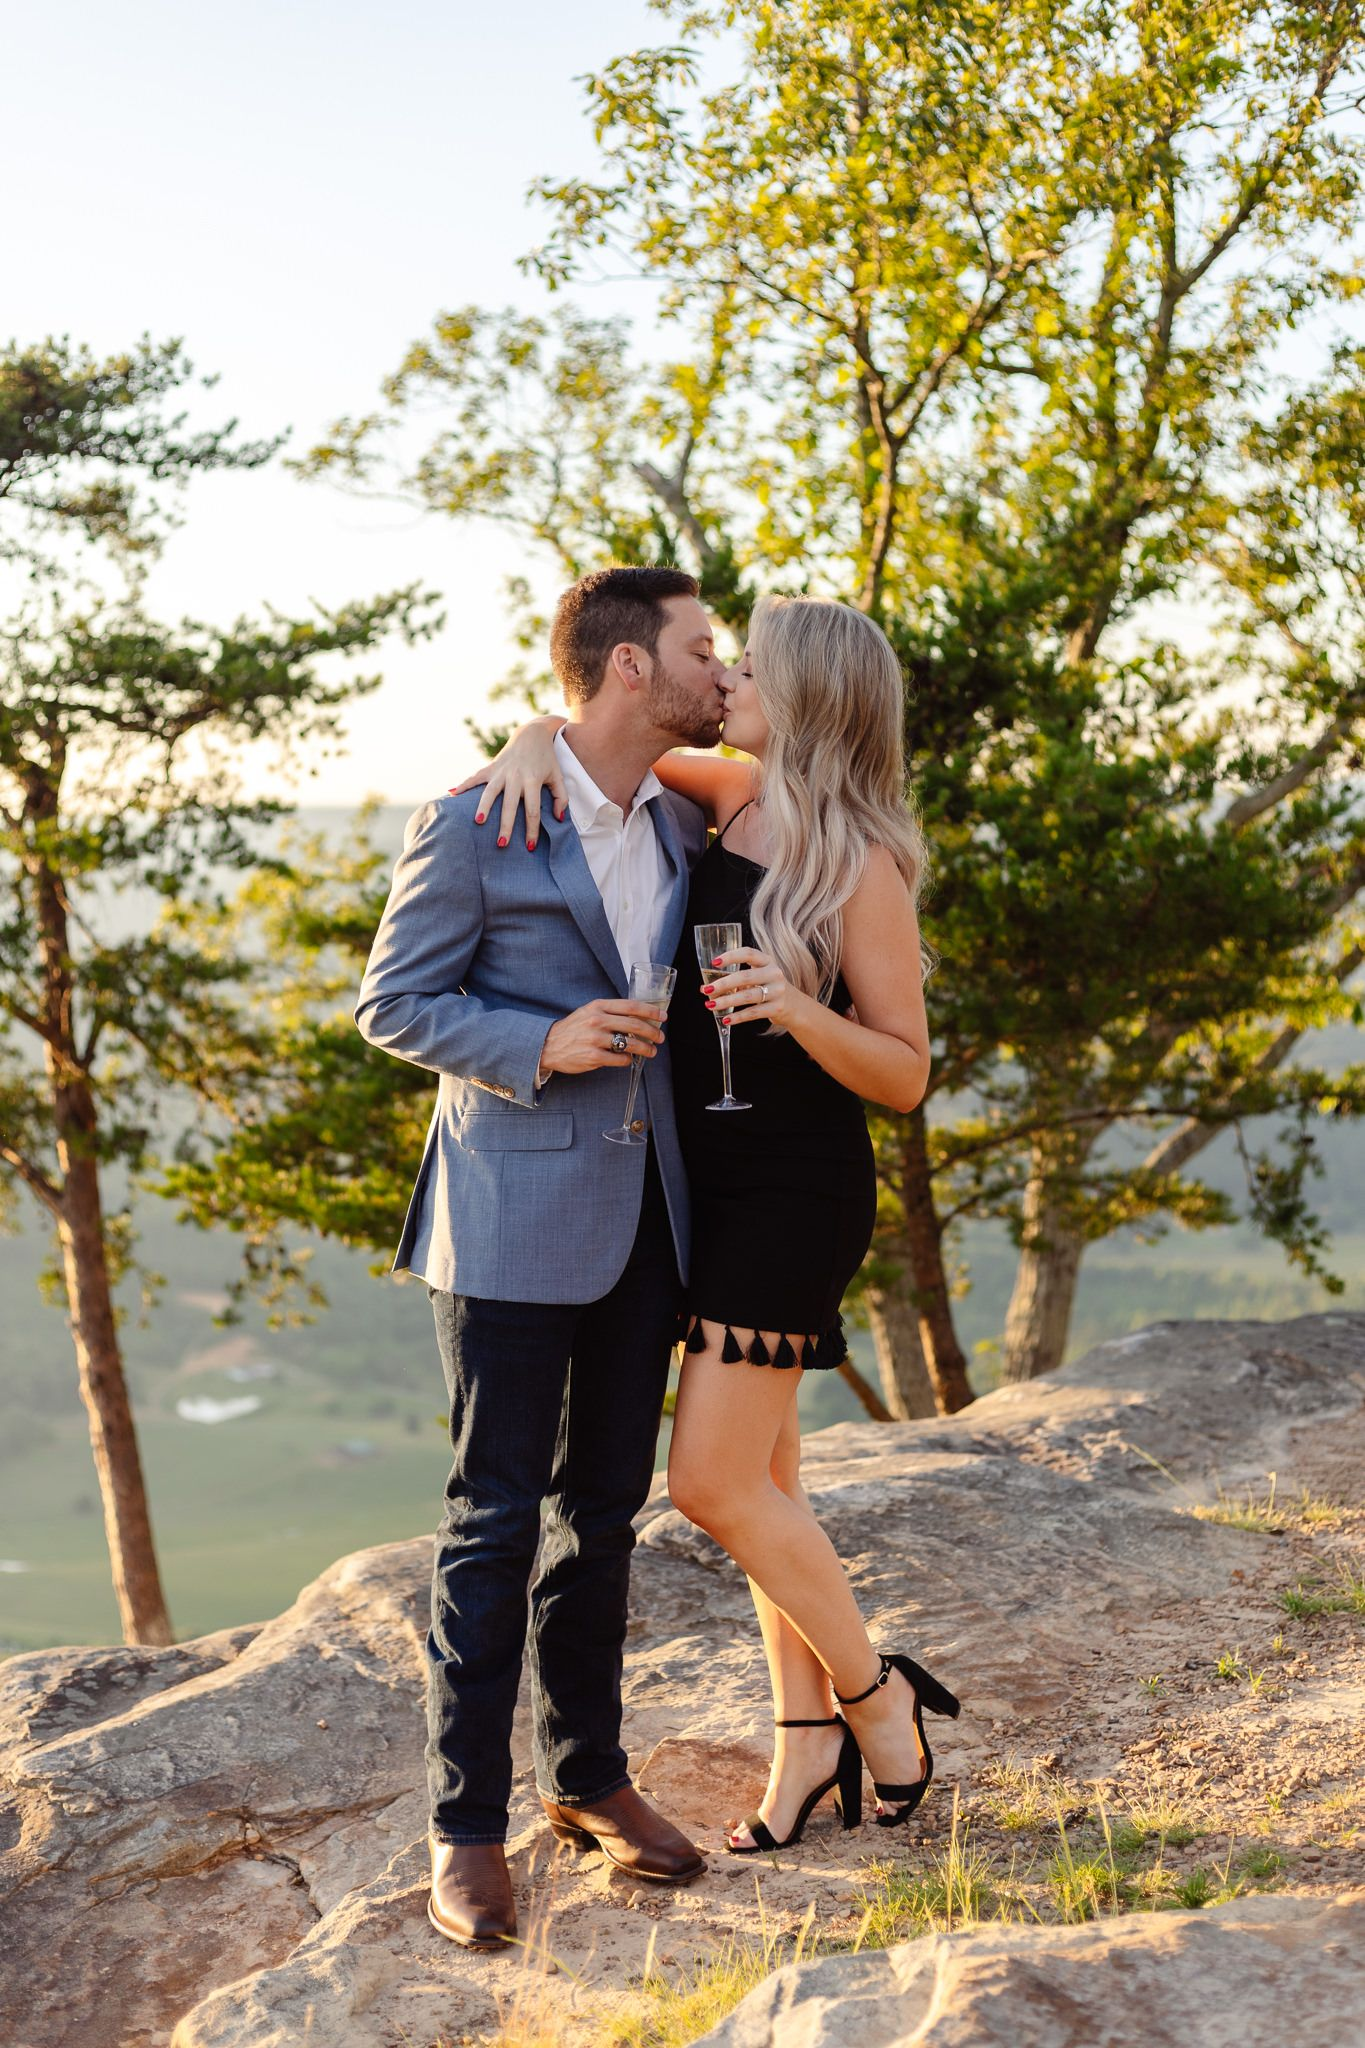 A couple kisses on top of a mountain after their surprise proposal captured by engagement photographer Sarah Swainson.